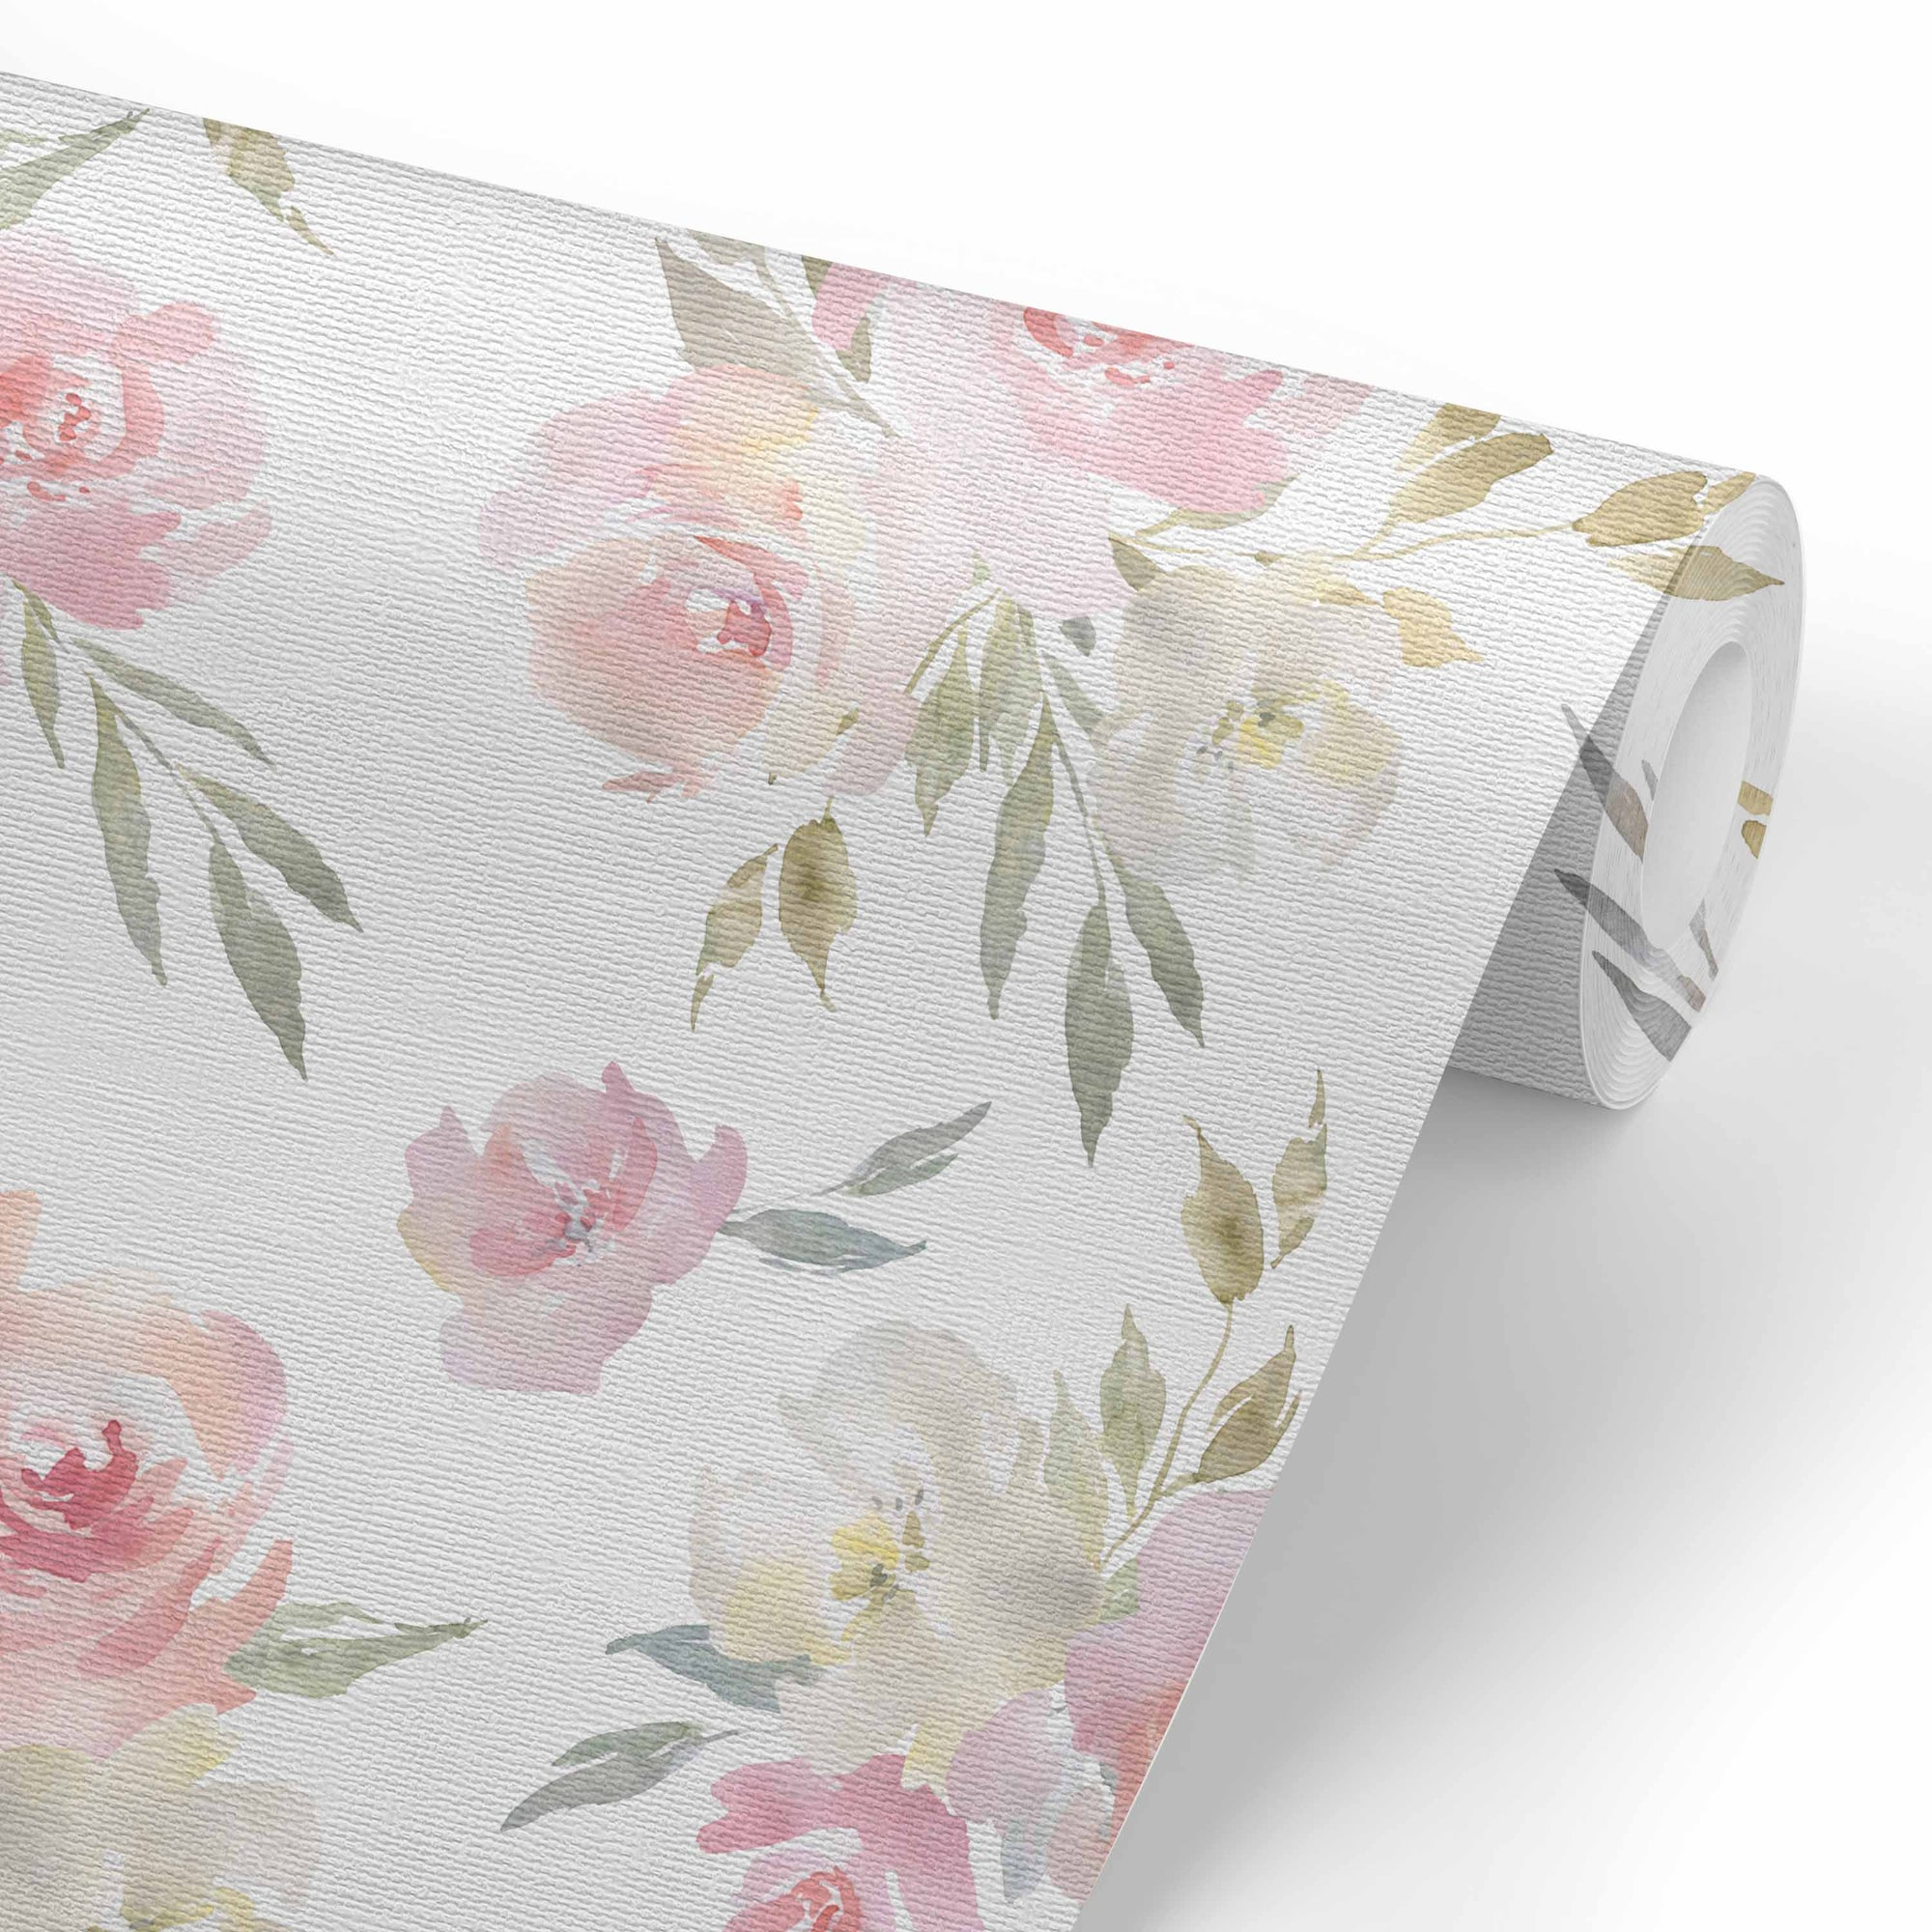 Delaney S Dusty Floral Removable Wallpaper Caden Lane